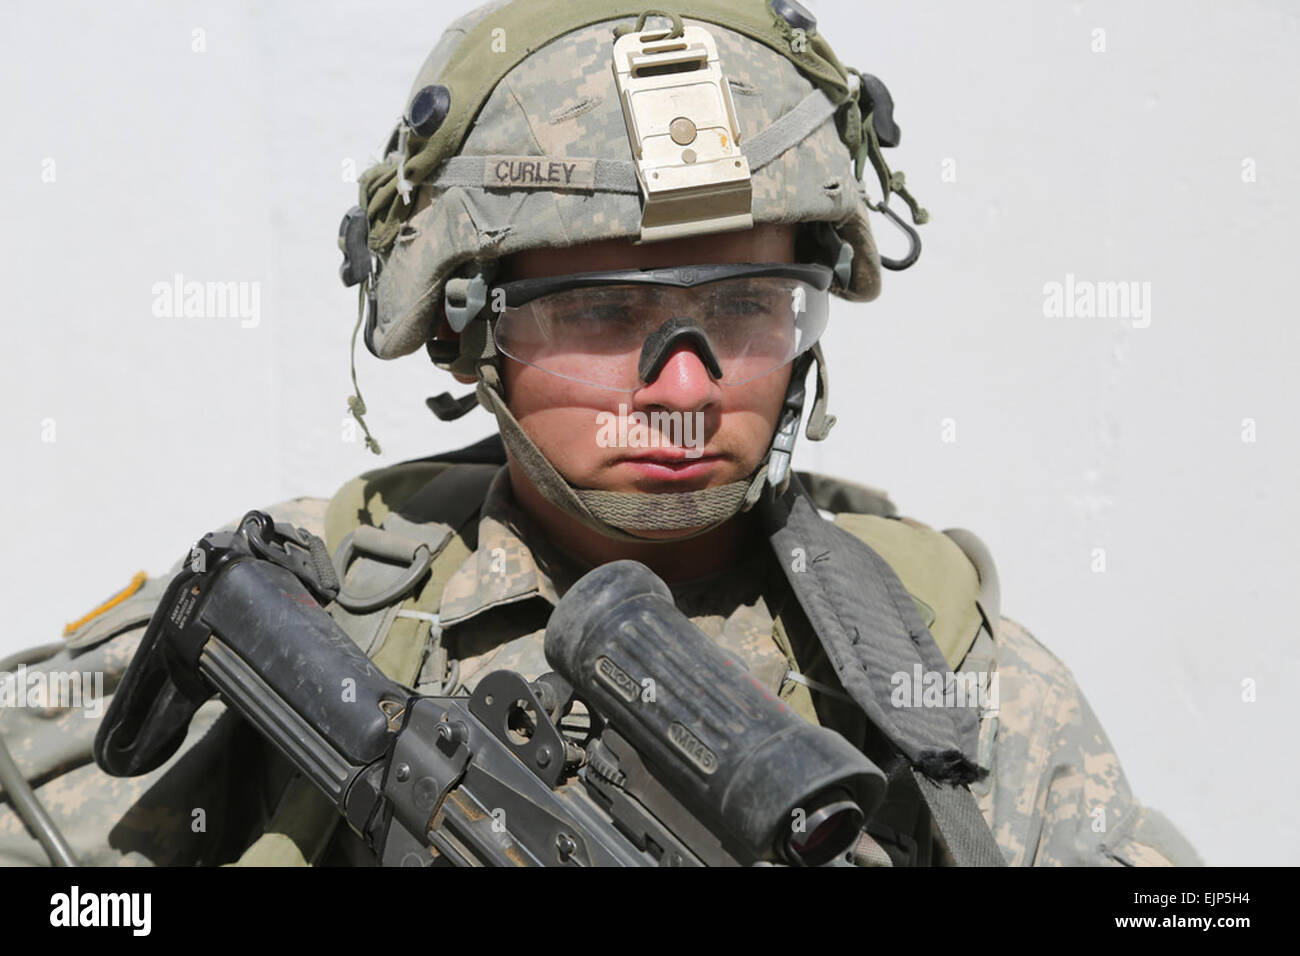 """FORT IRWIN, Calif. - A U.S. Army Soldier from 3rd Cavalry Regiment """"Brave Rifles"""" watches his - Stock Image"""